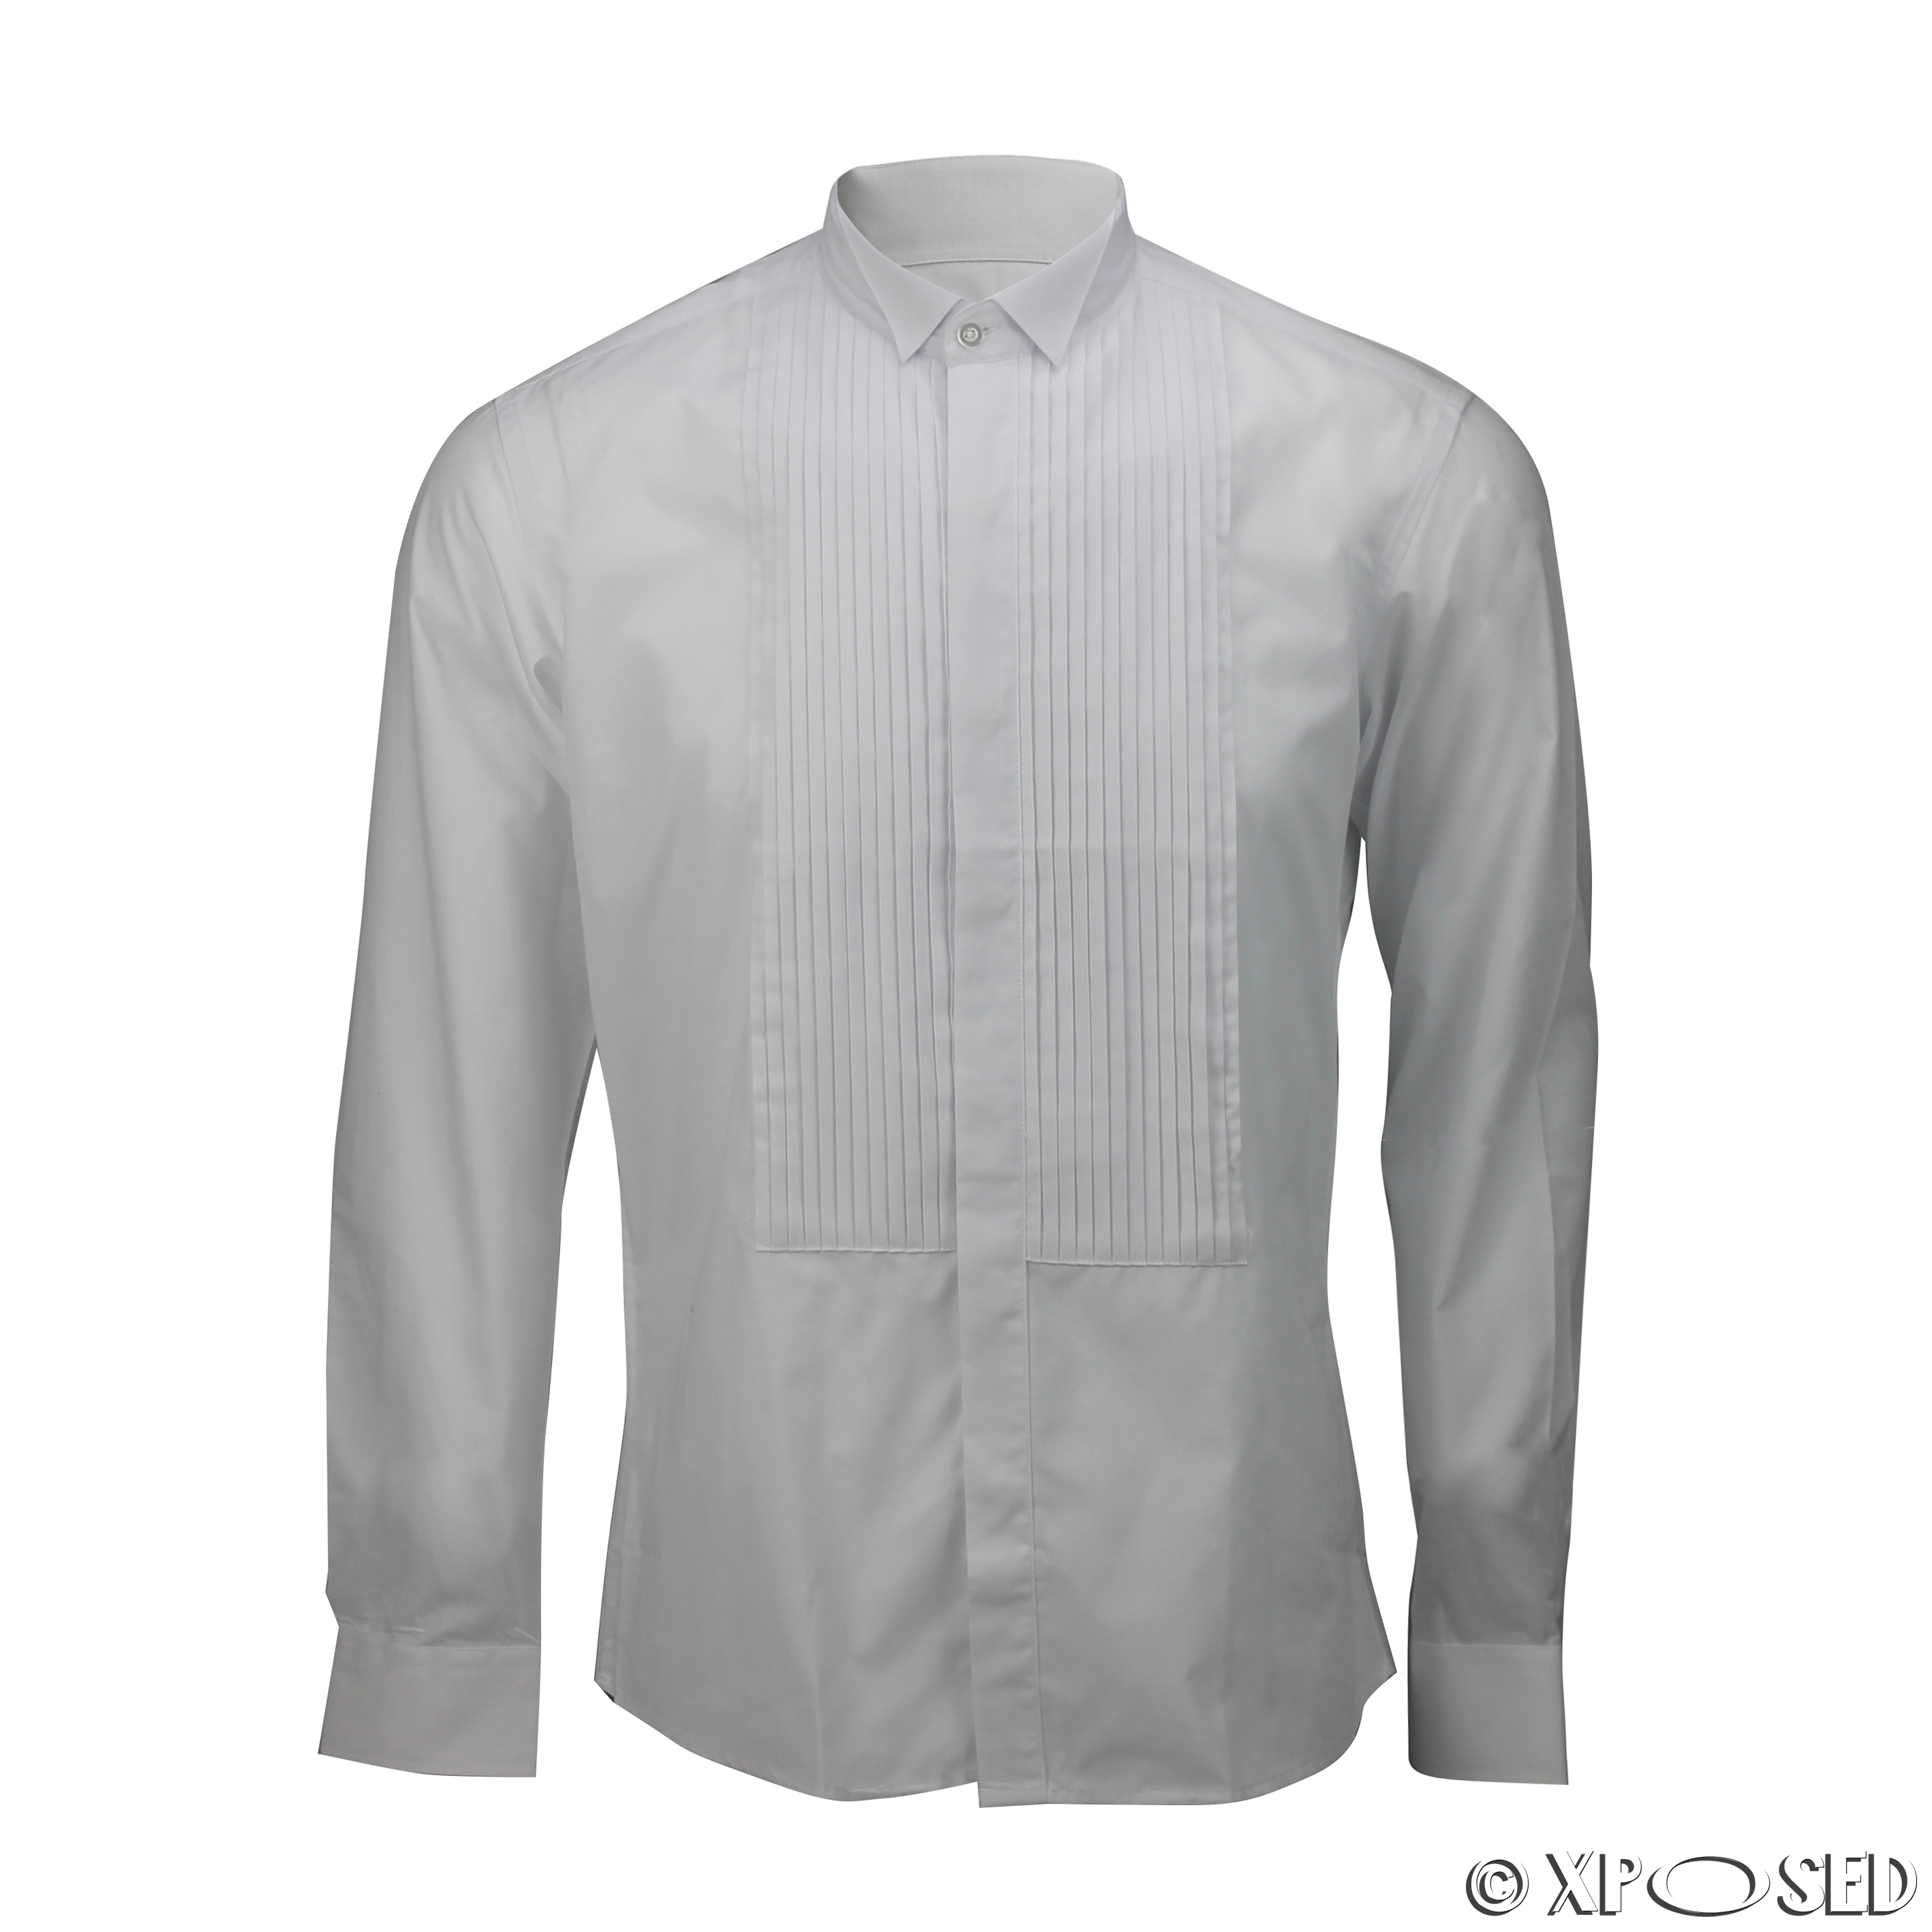 Black dress shirts, white dress shirts, collared dress shirts, formal evening dress shirts & tuxedo shirts at MyTuxedo Dress shirts for men from $ JavaScript seems to be disabled in your browser.